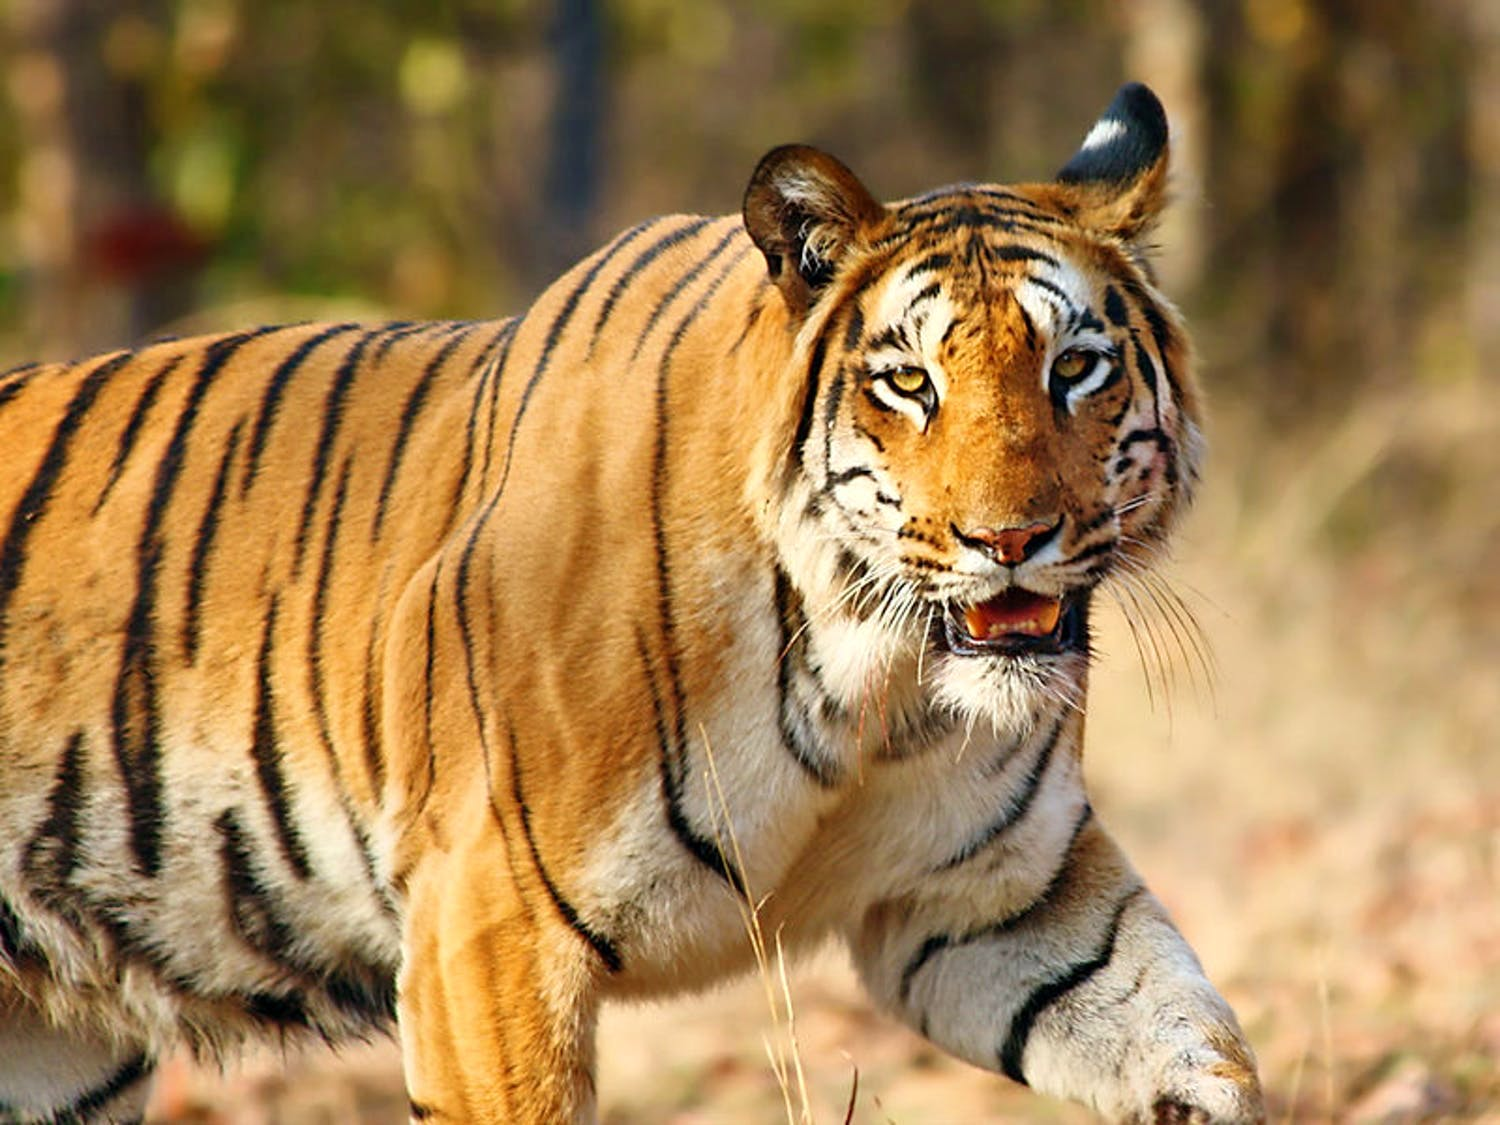 Wanna Road Trip? Explore The Wild Side And Go Tiger-Spotting In Melghat